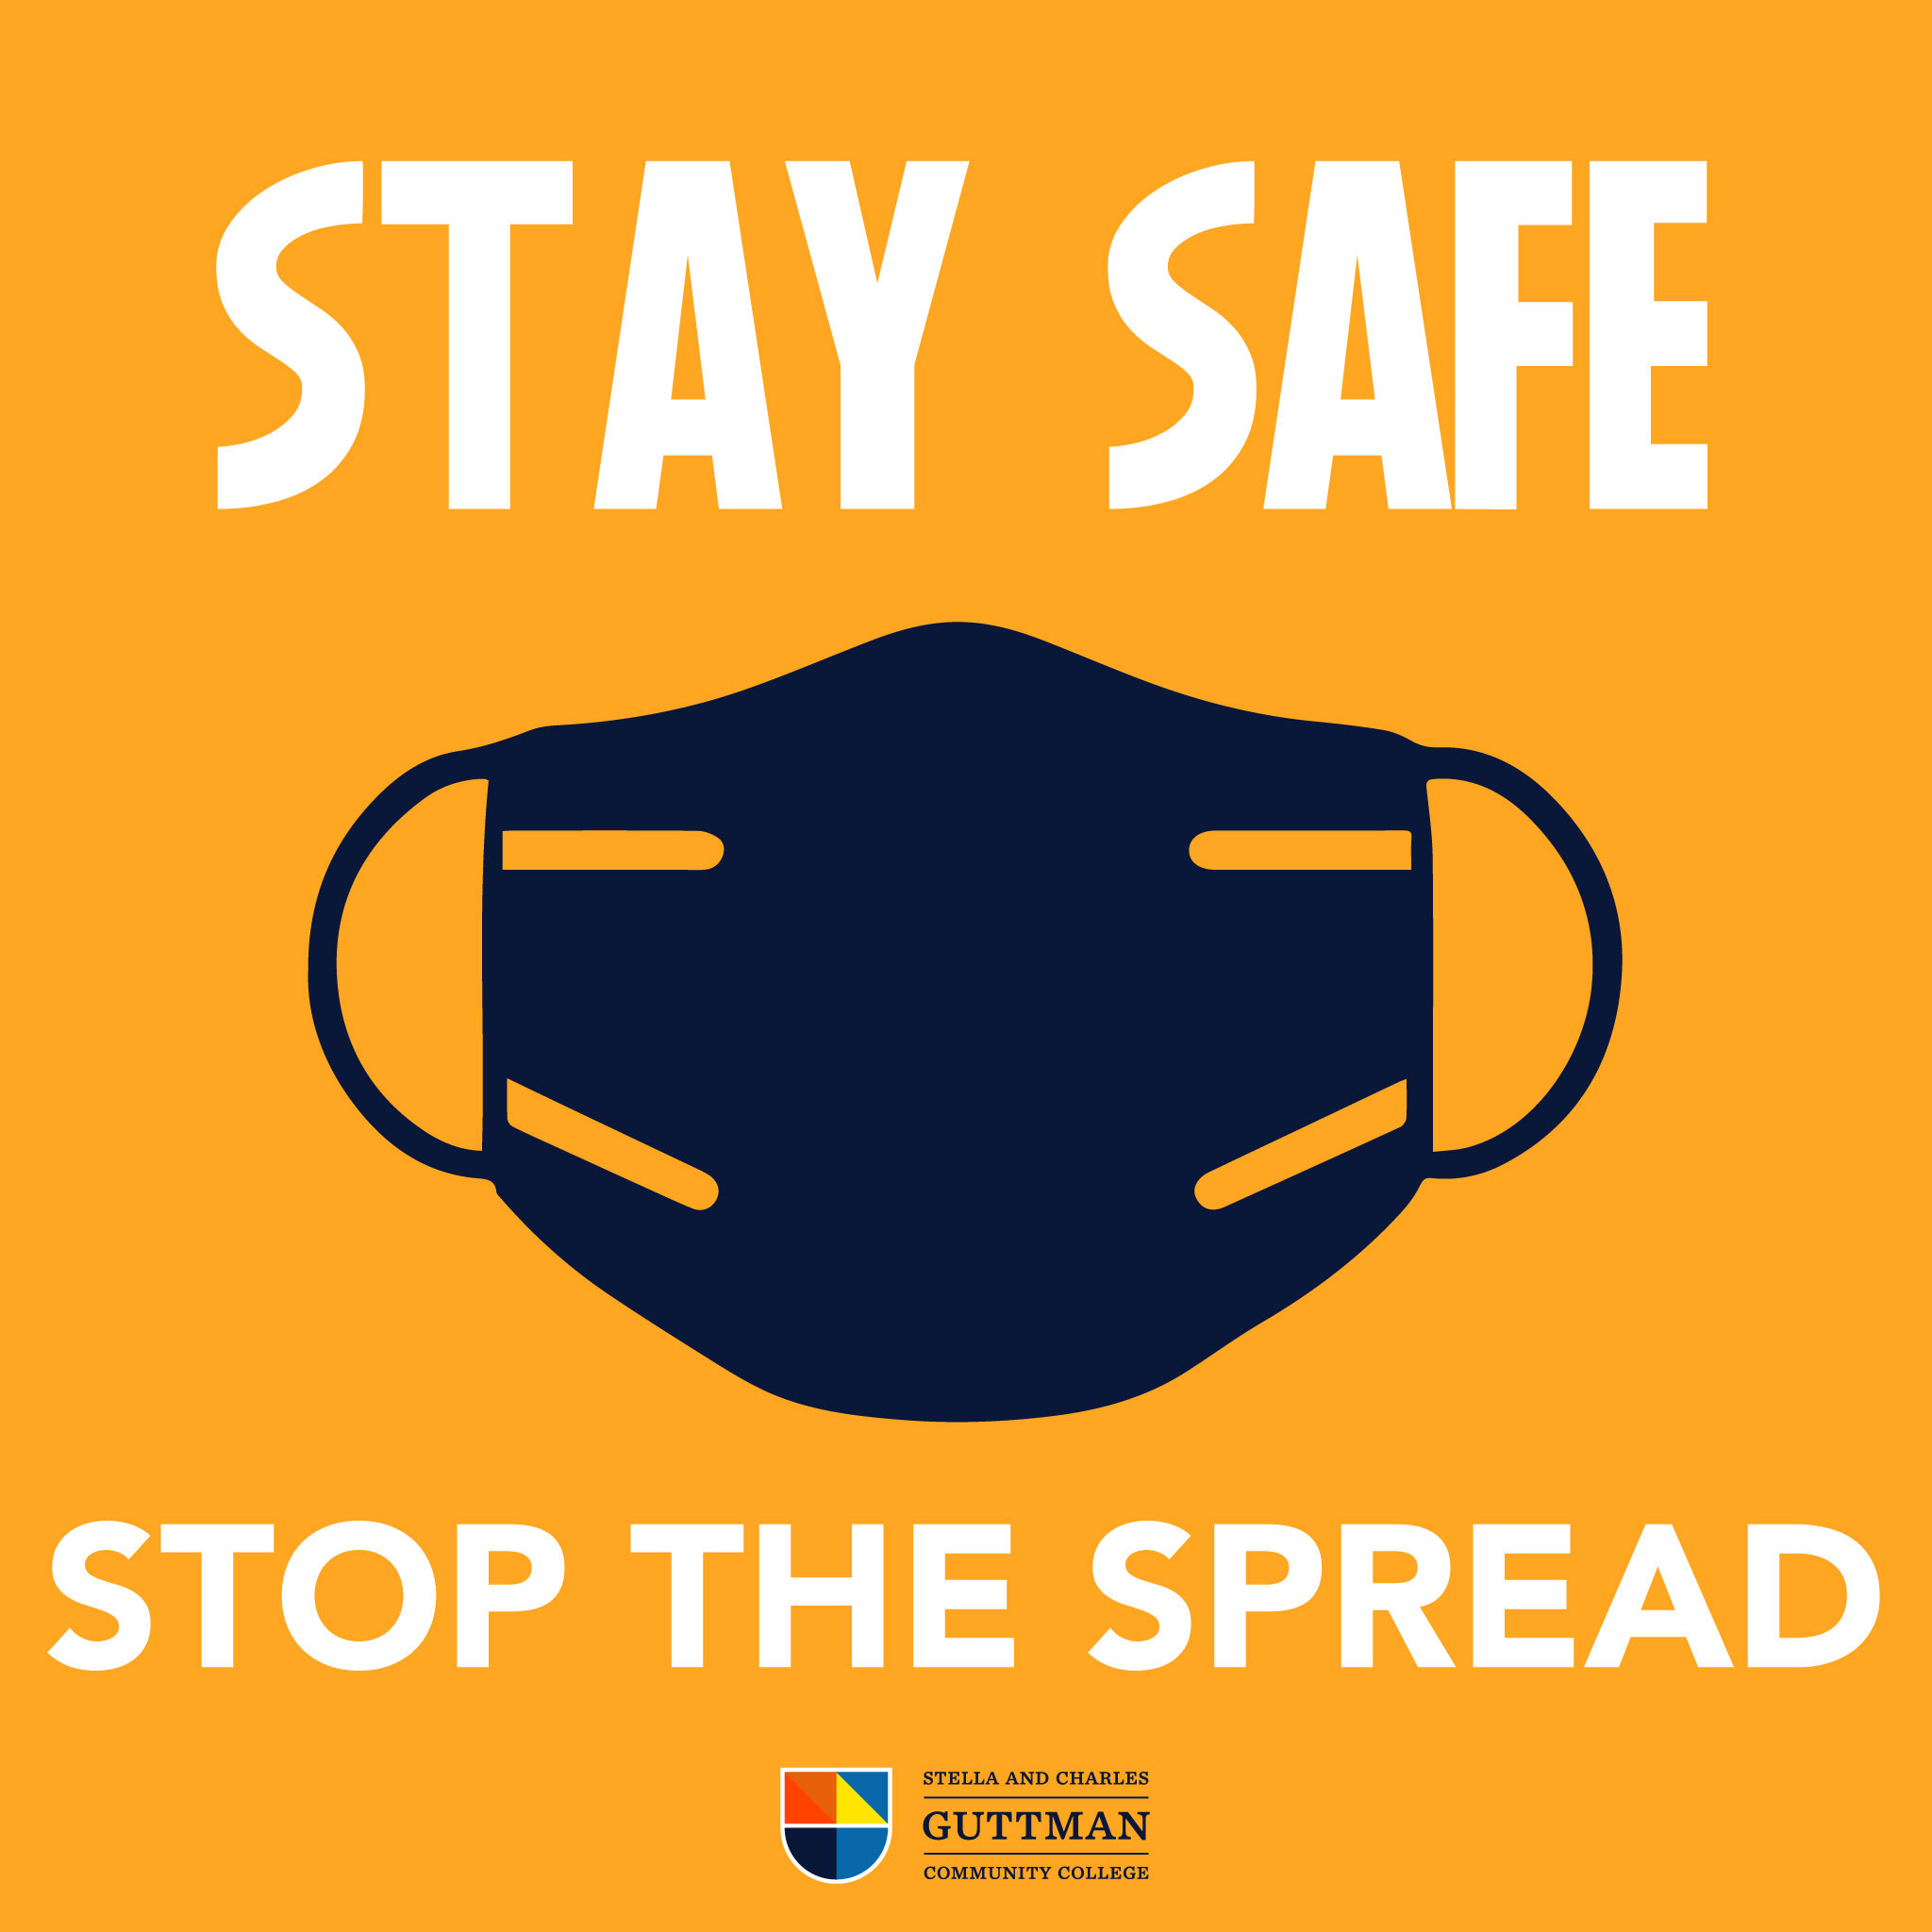 Stay safe, stop the spread - image of a face mask